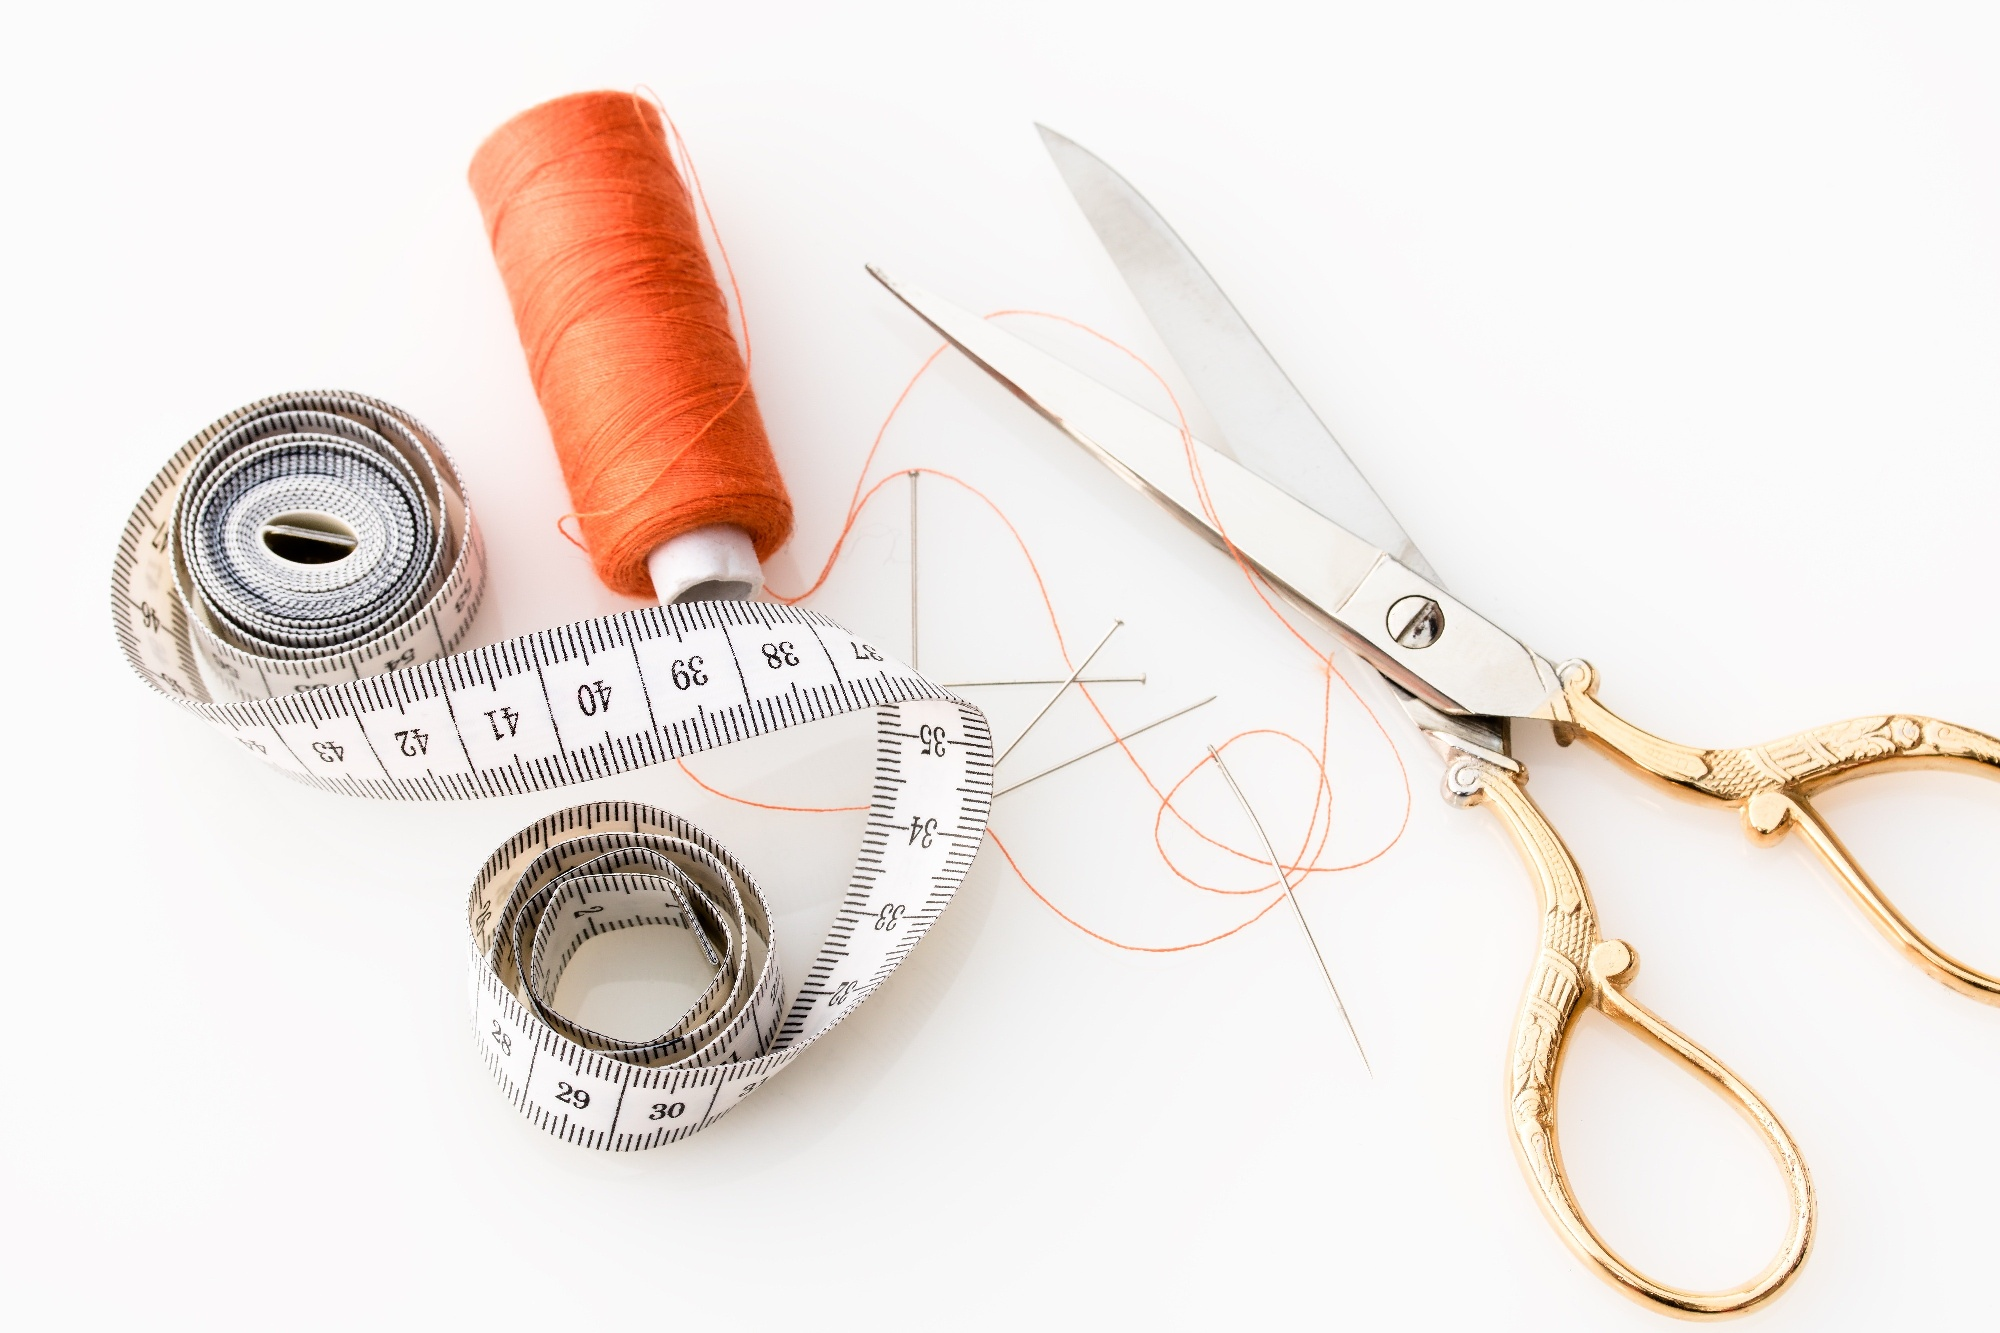 MakersValley Blog | The Advantages of Private Label Fashion Production Over Wholesale Sourcing